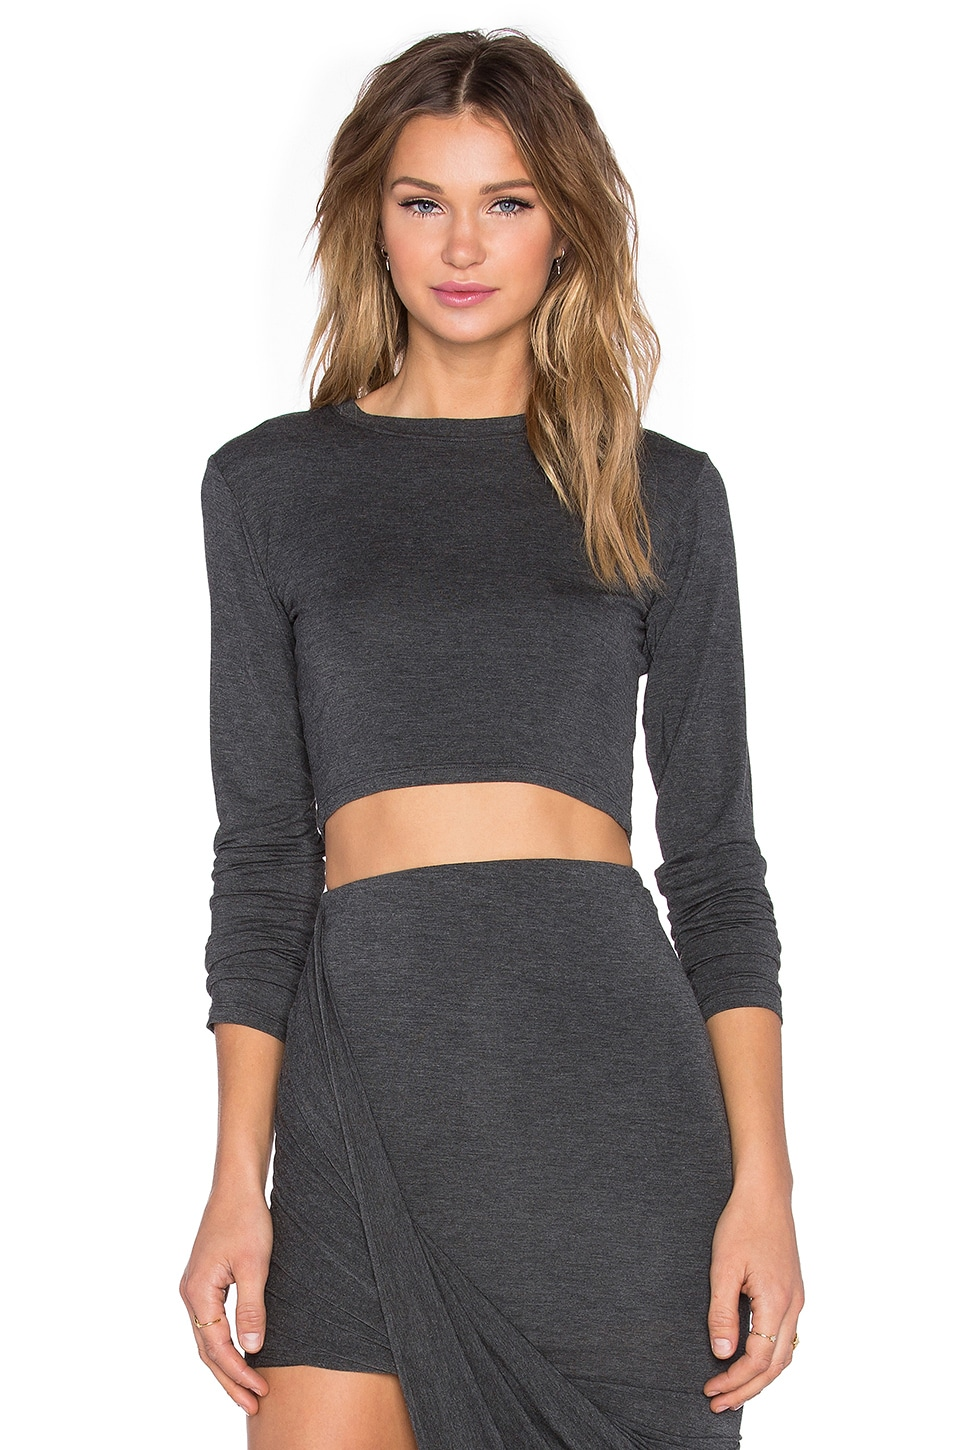 BLQ BASIQ Long Sleeve Crop Top in Charcoal